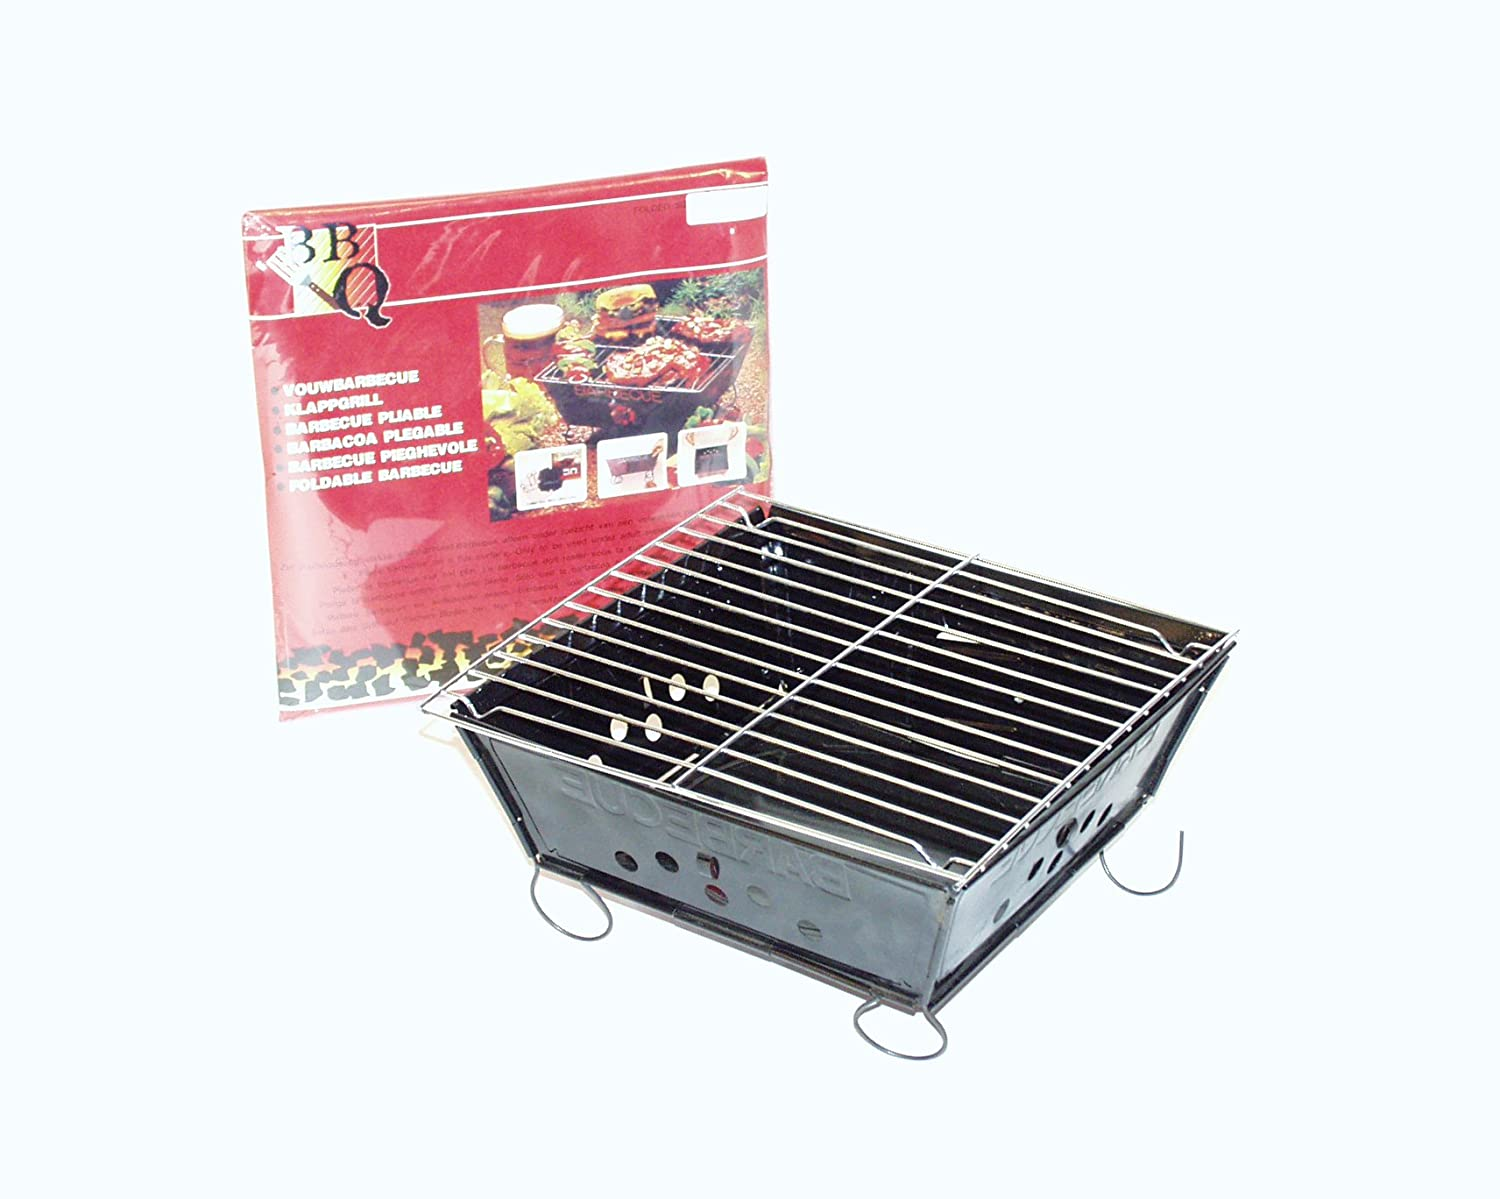 CAMP-GEAR 8108145 25 x 25 cm Collapsible BBQ barbecue Envelope - Black No label